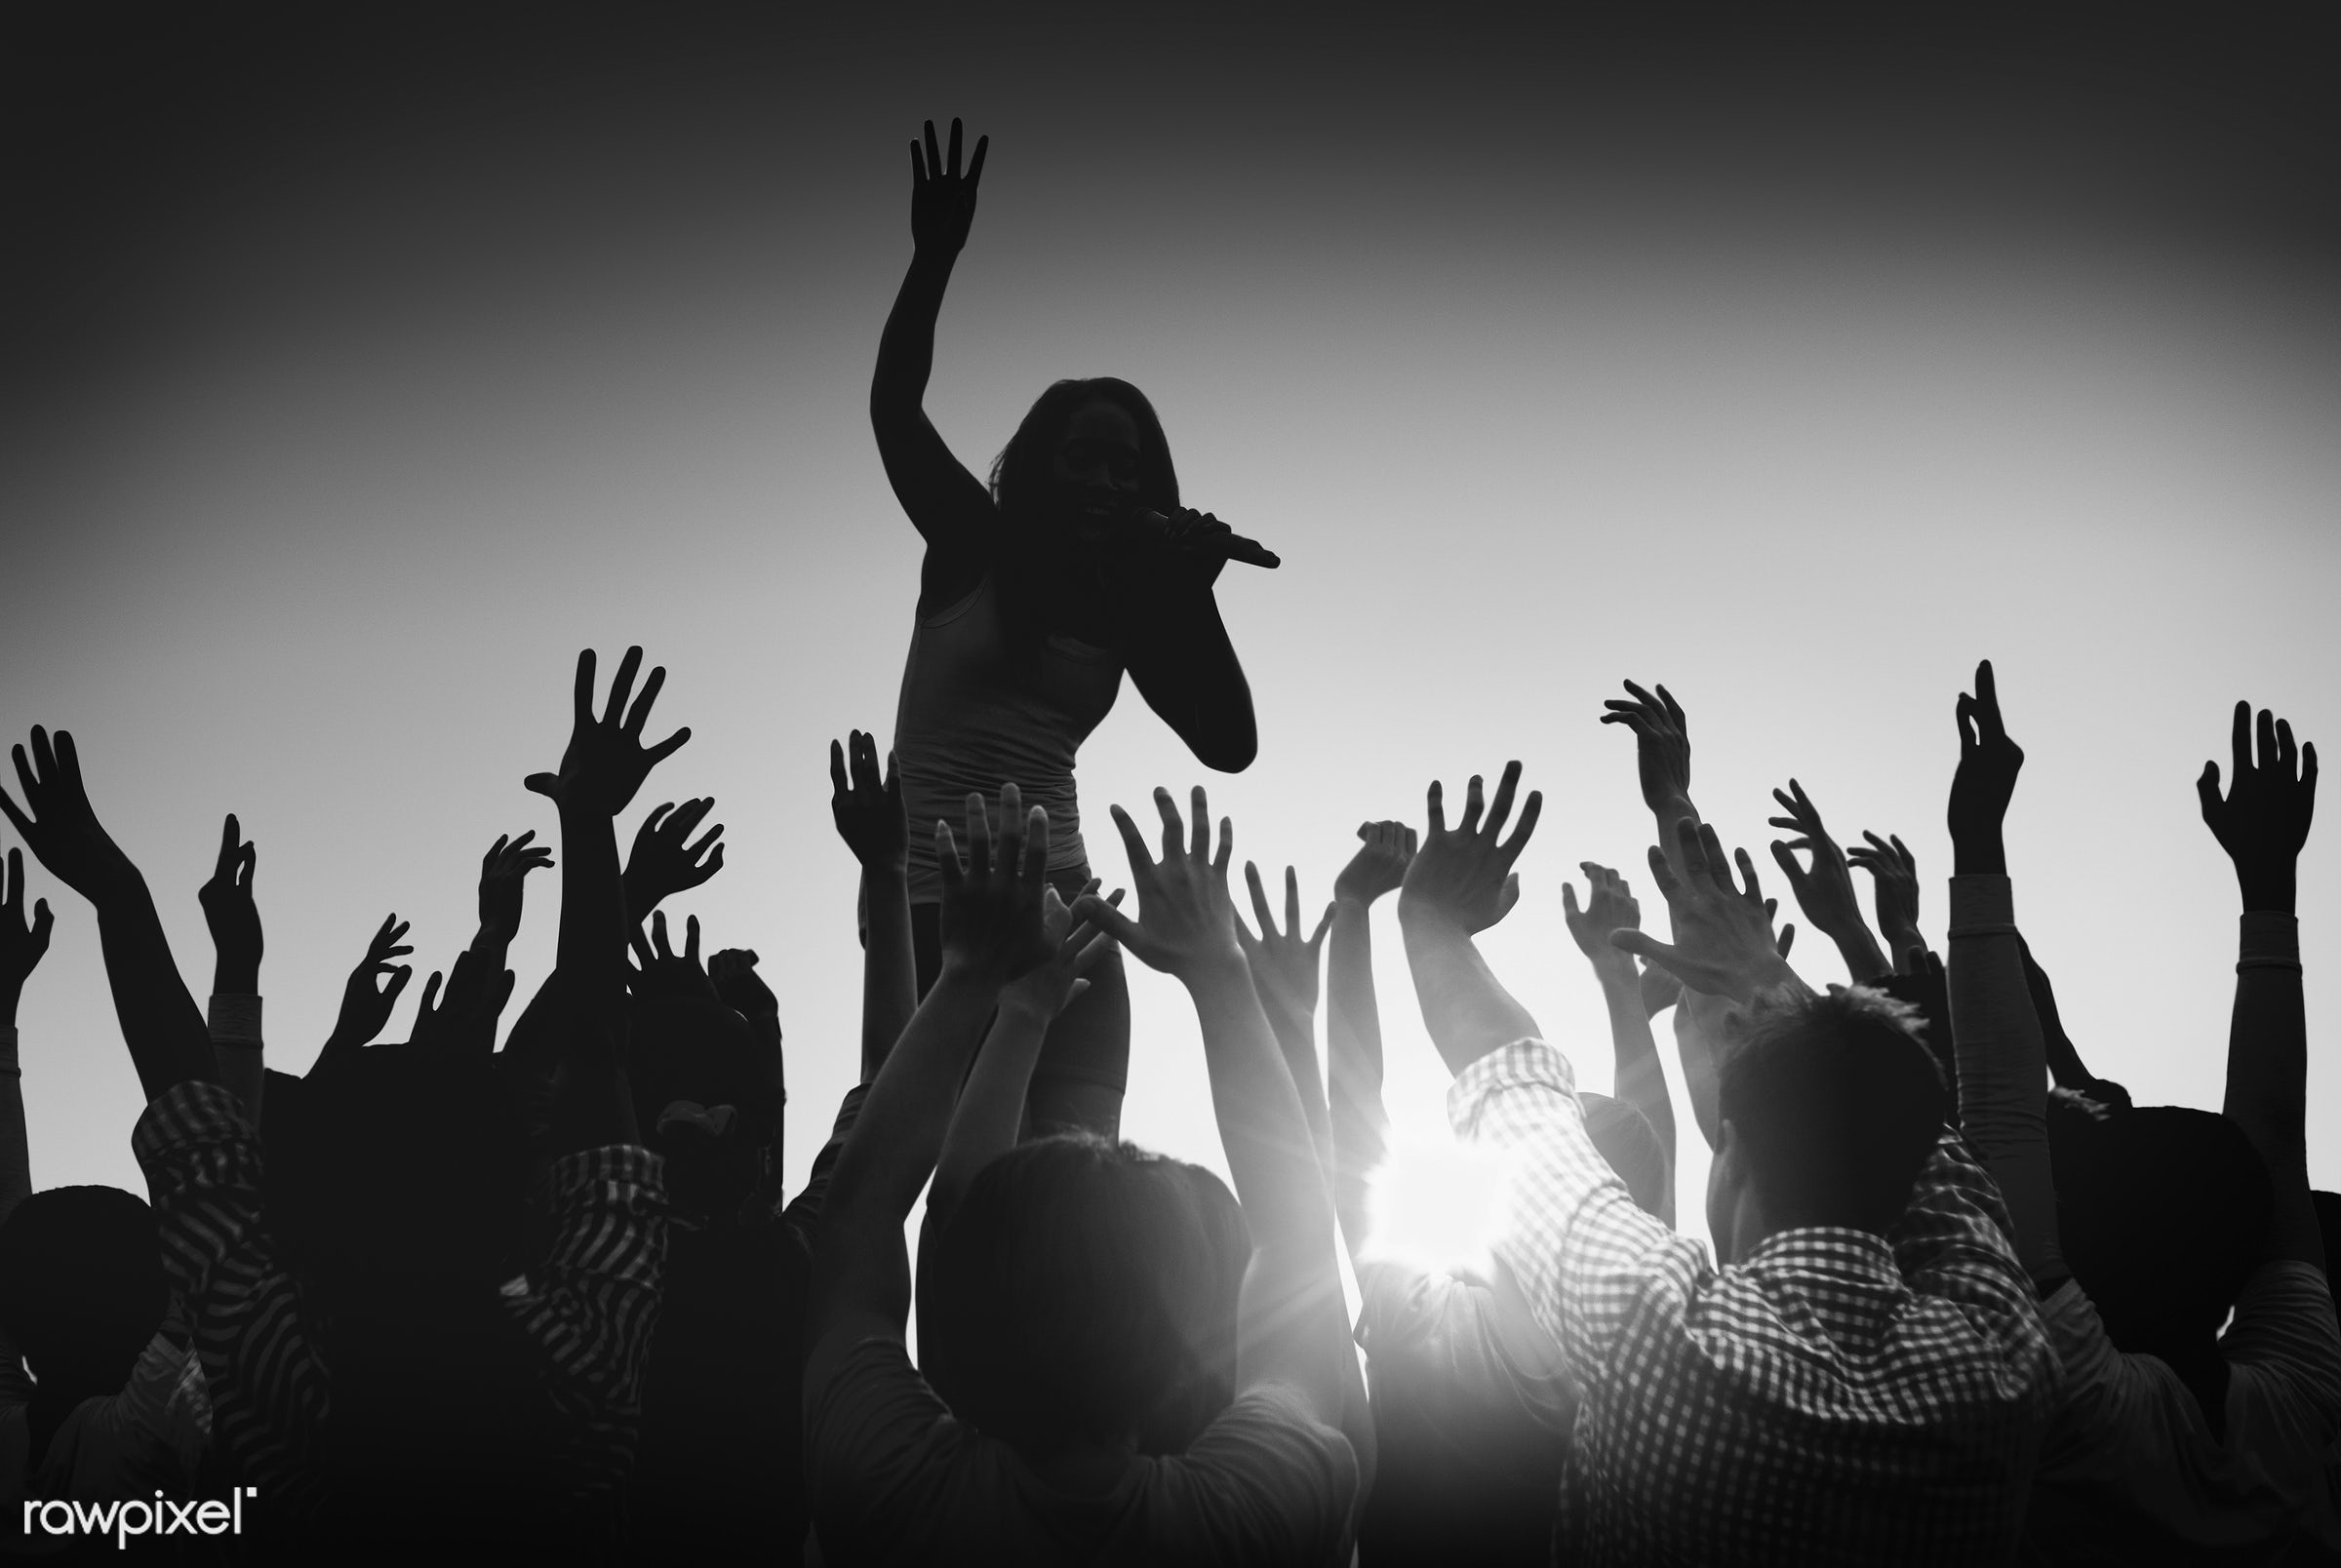 white, arms raised, artist, audience, back lit, black and white, carefree, celebration, cheerful, community, concert, crowd...